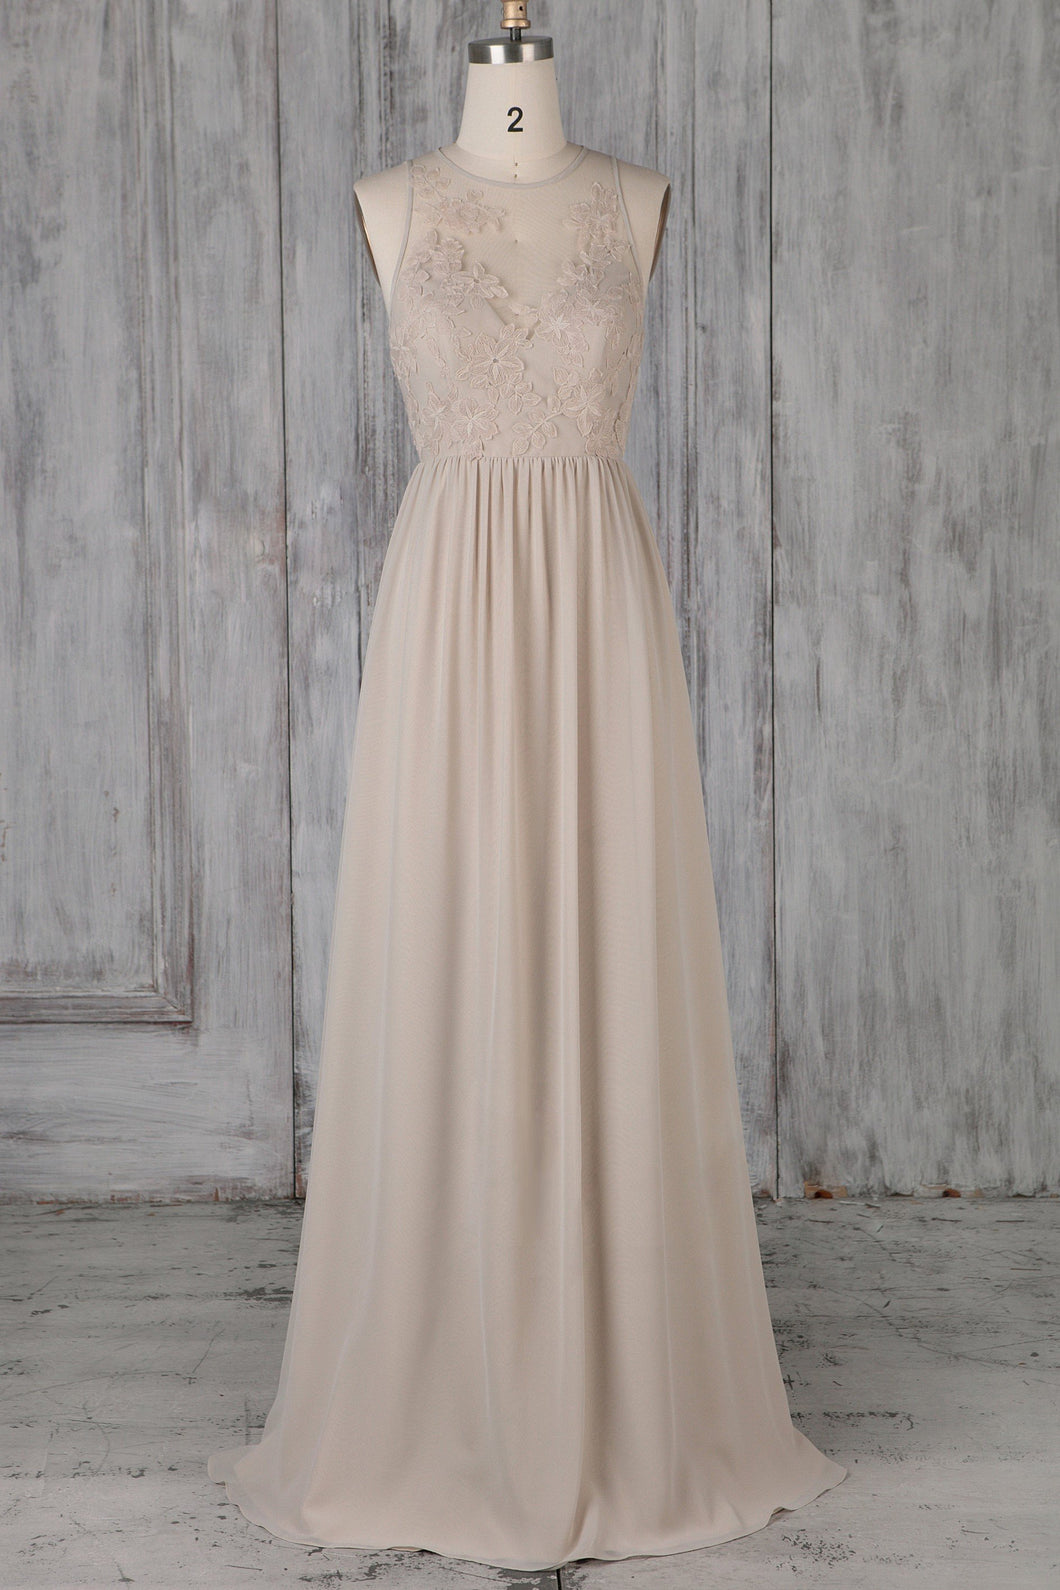 Jewel Neck Full-Length Illusion Chiffon Bridesmaid Dress With Applique